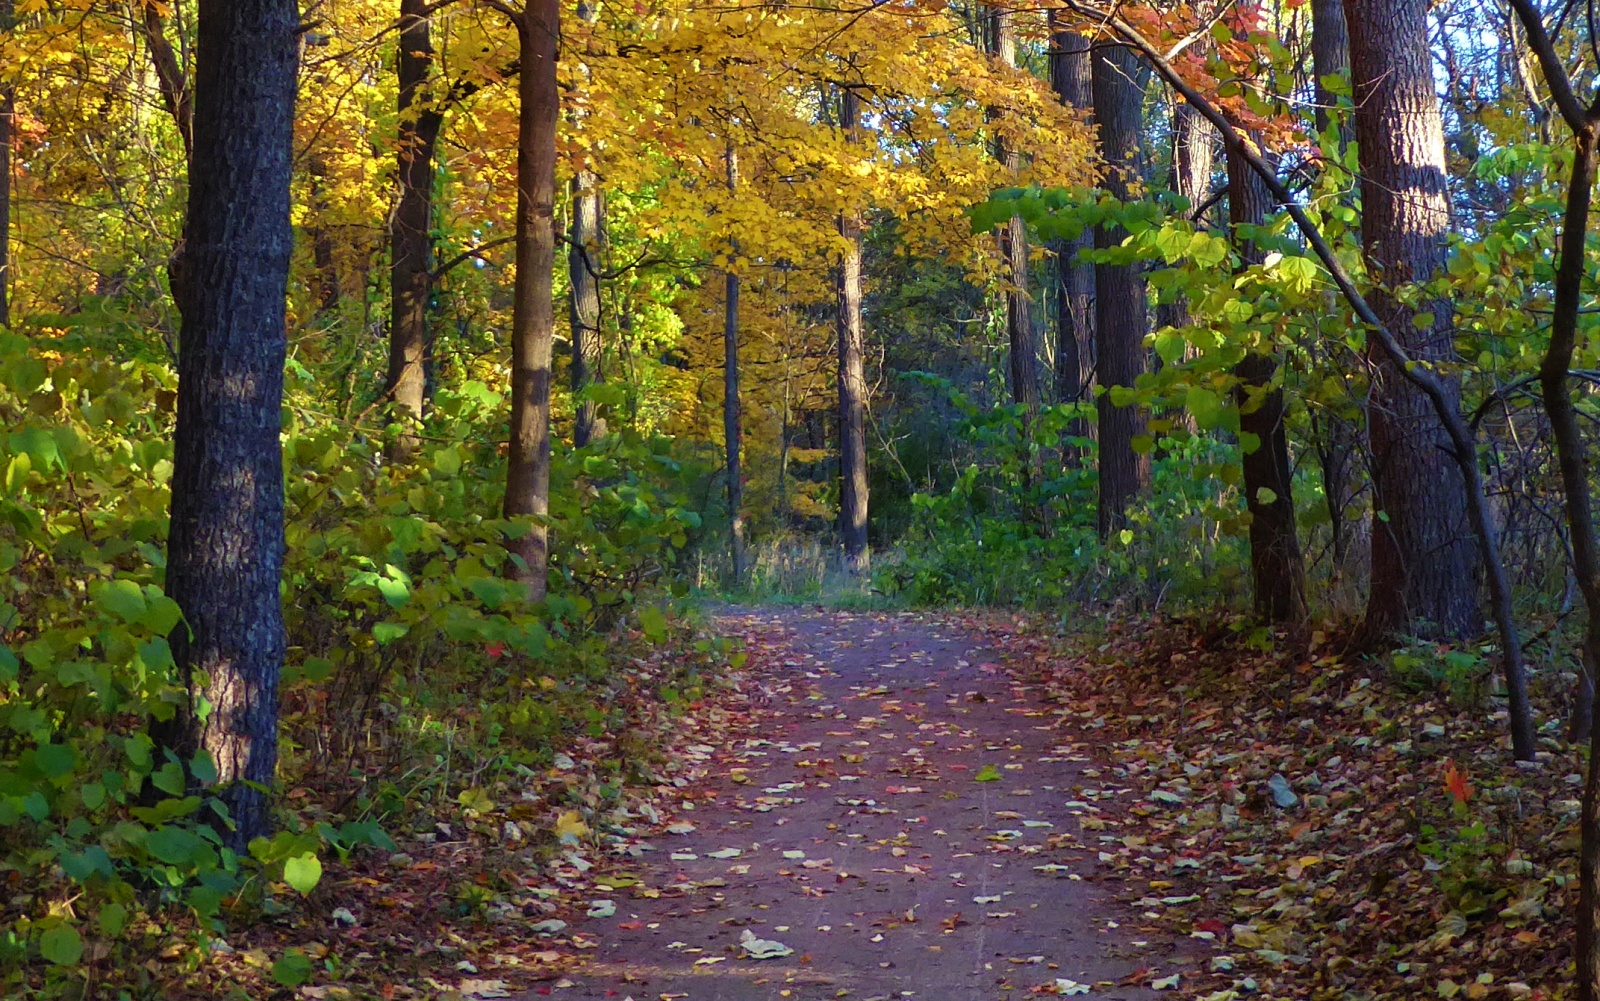 State Of Michigan Health Plan. Michigan woods with path in fall.